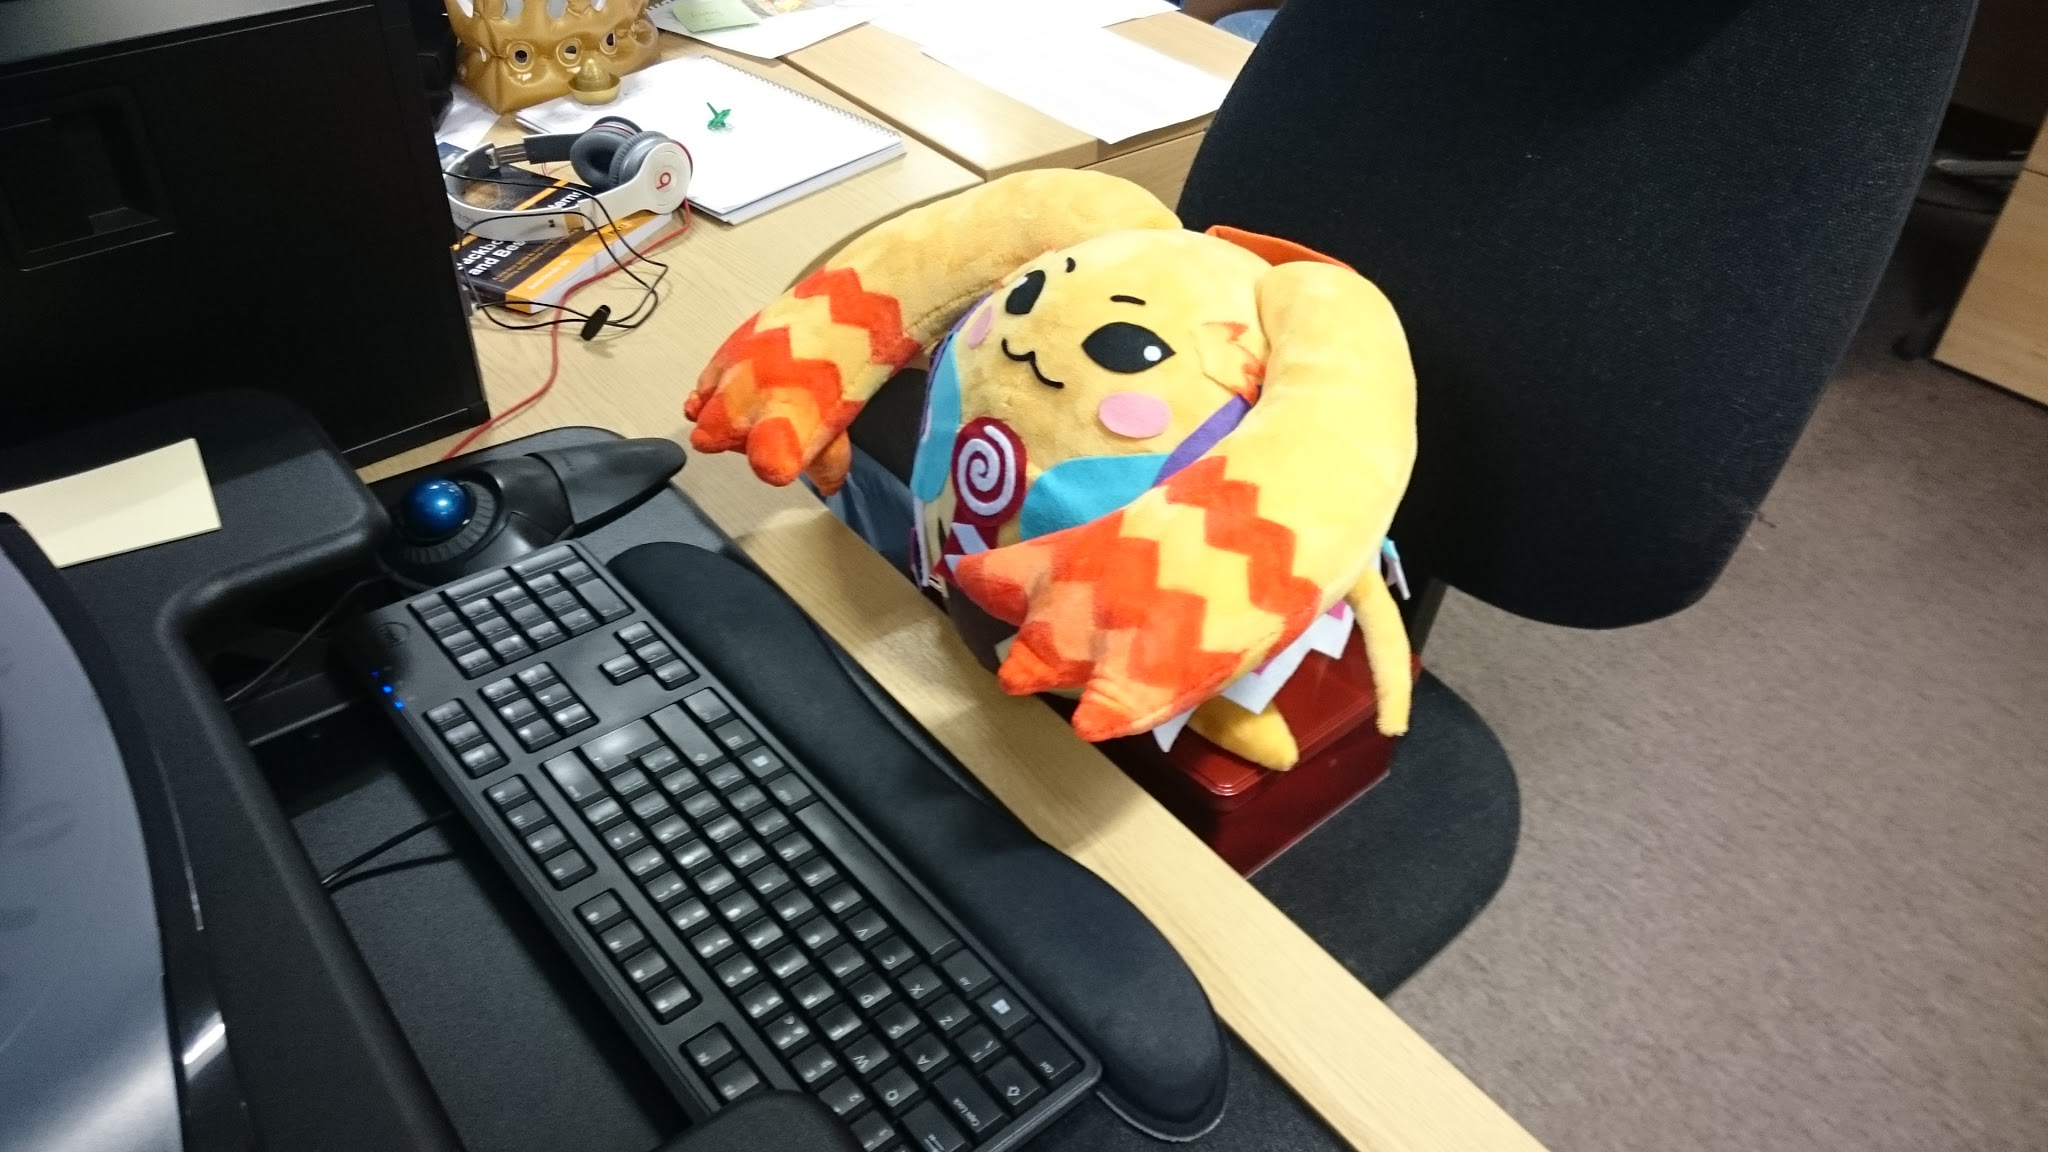 Riki at the office